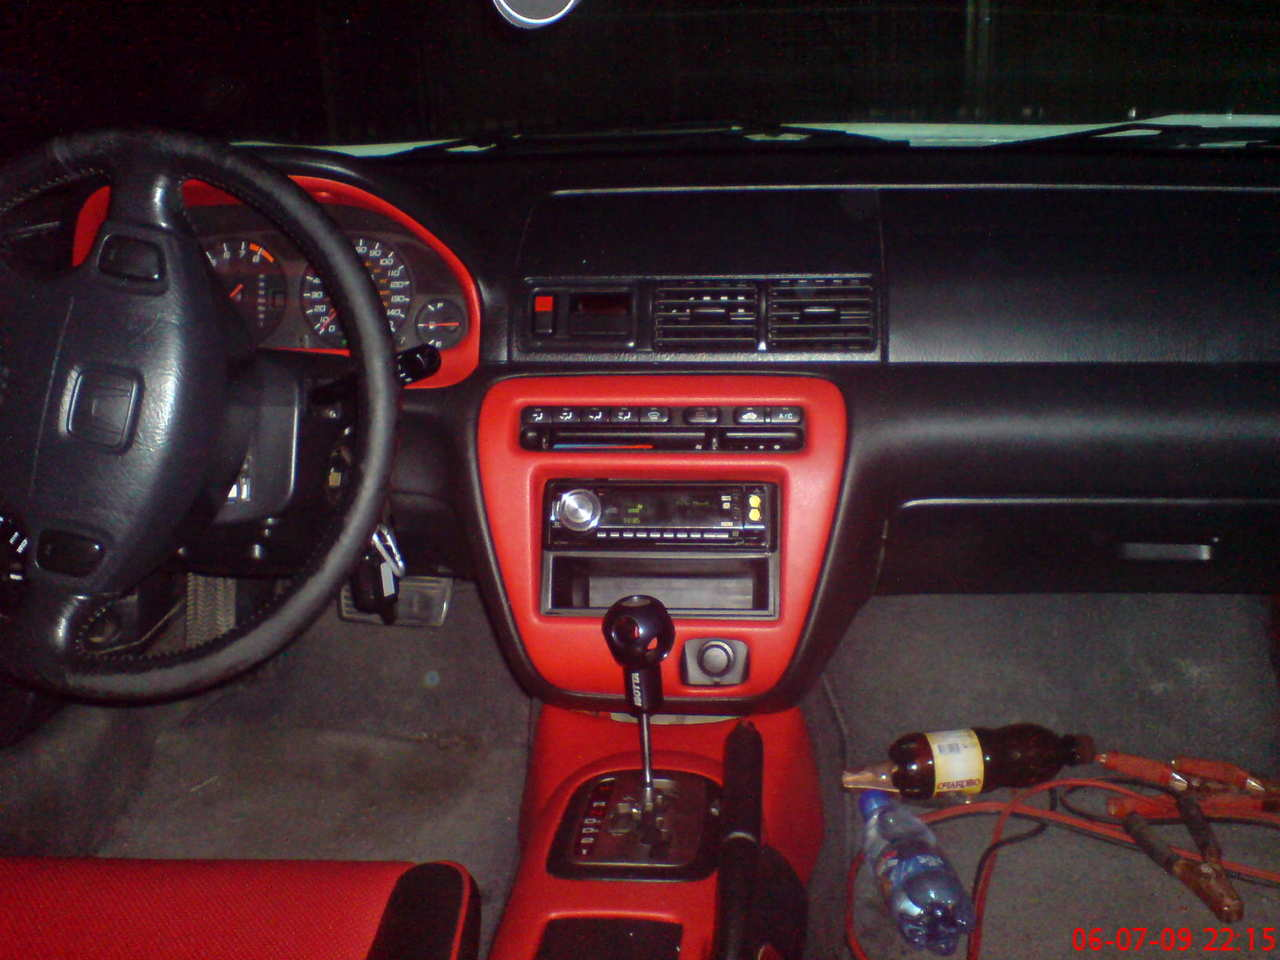 2001 Honda Prelude Pictures, 2.2l., Gasoline, FF, Automatic For Sale